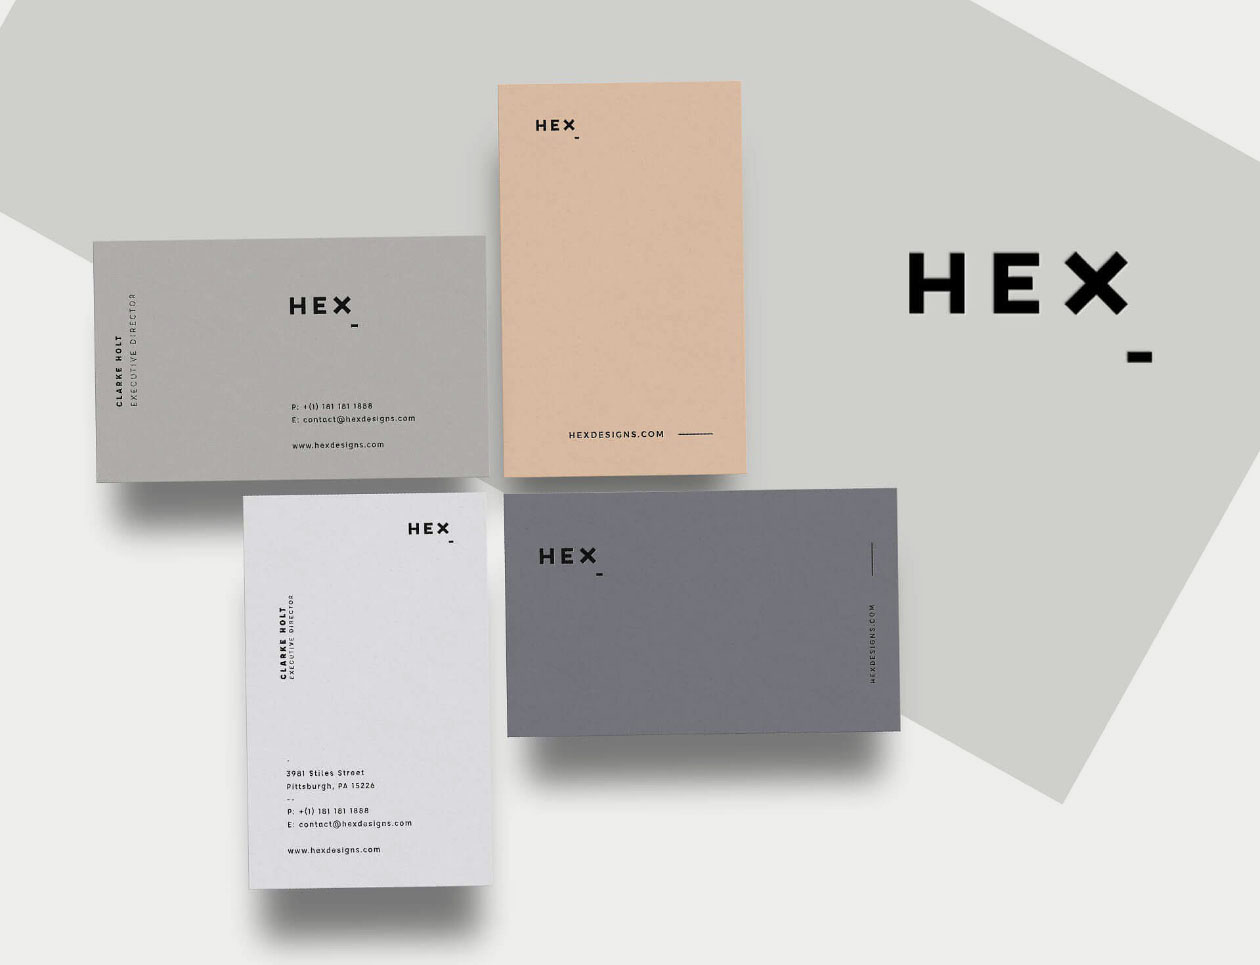 Hex Business Card Print Template - Business card print out template